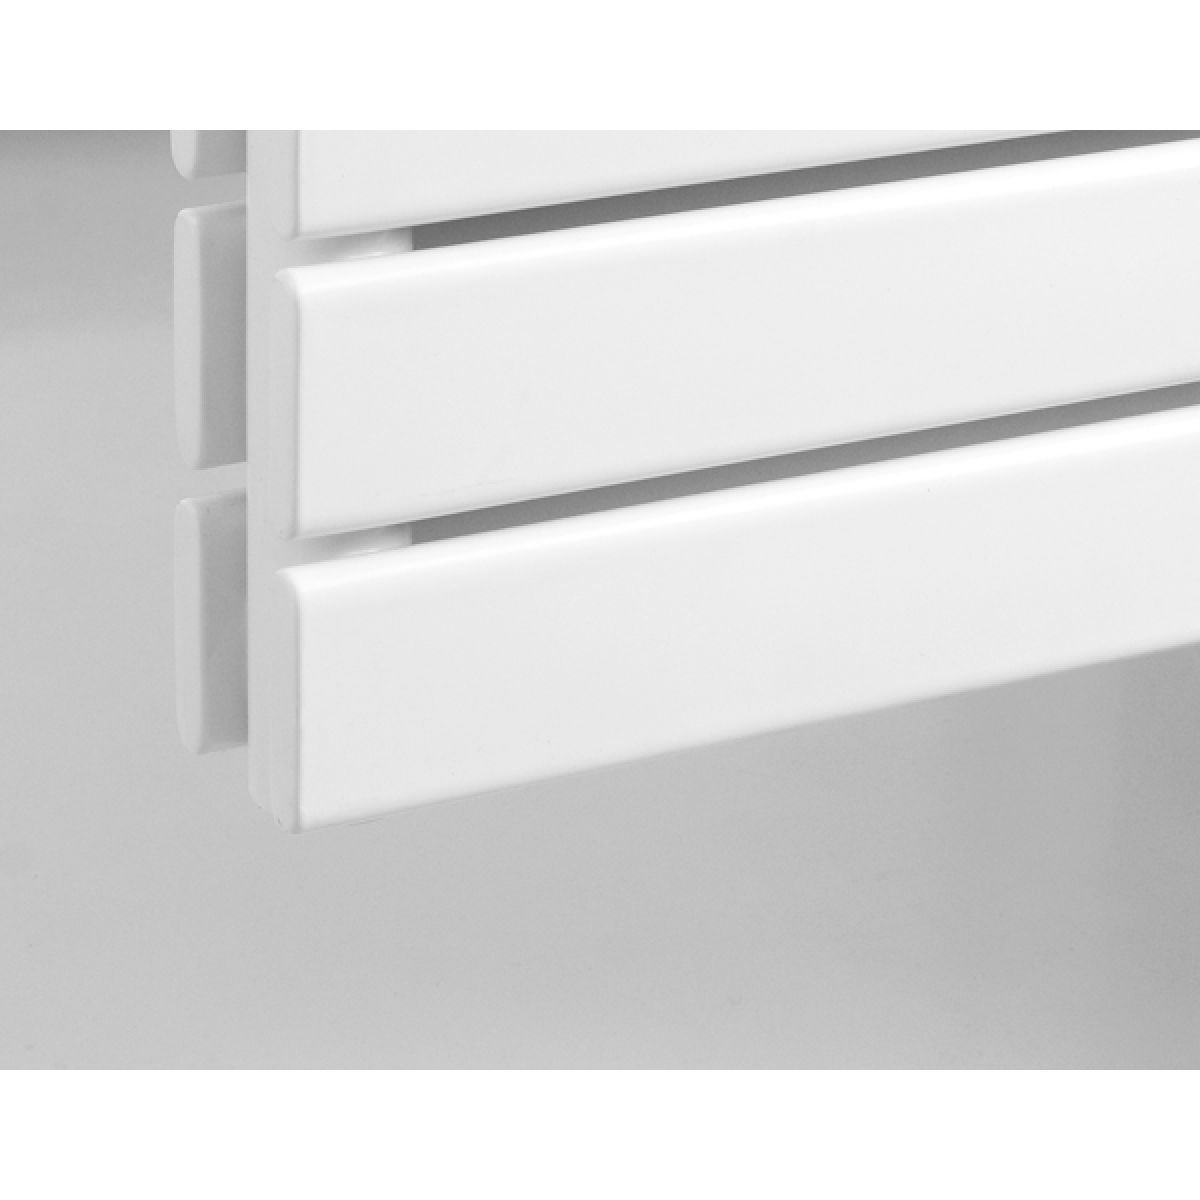 Rione Double White Electric Horizontal Radiator 550 x 400mm Detail 1